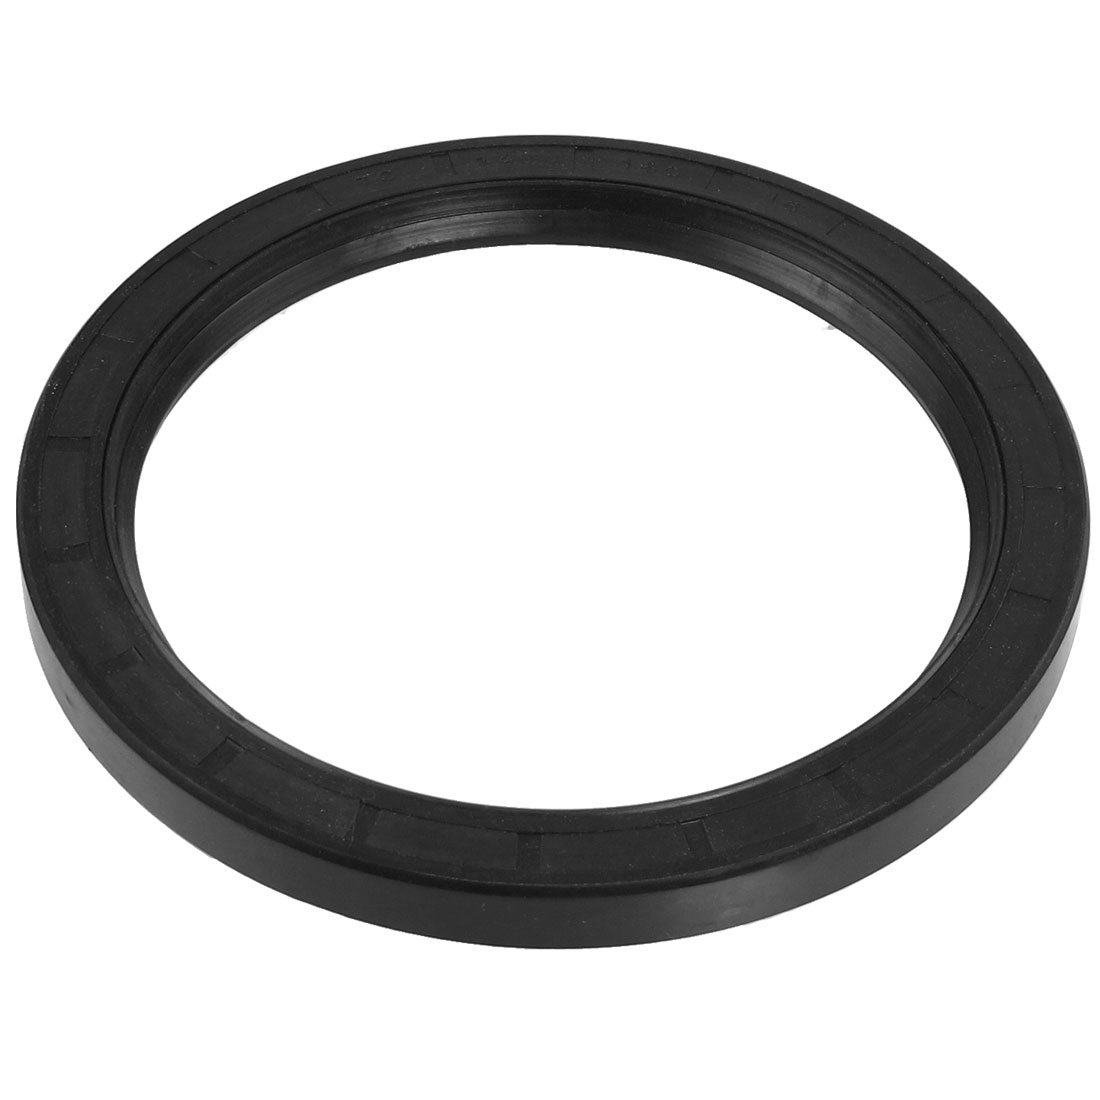 Black Nitrile Rubber Dual Lips Oil Shaft Seal TC 145mm x 180mm x 16mm